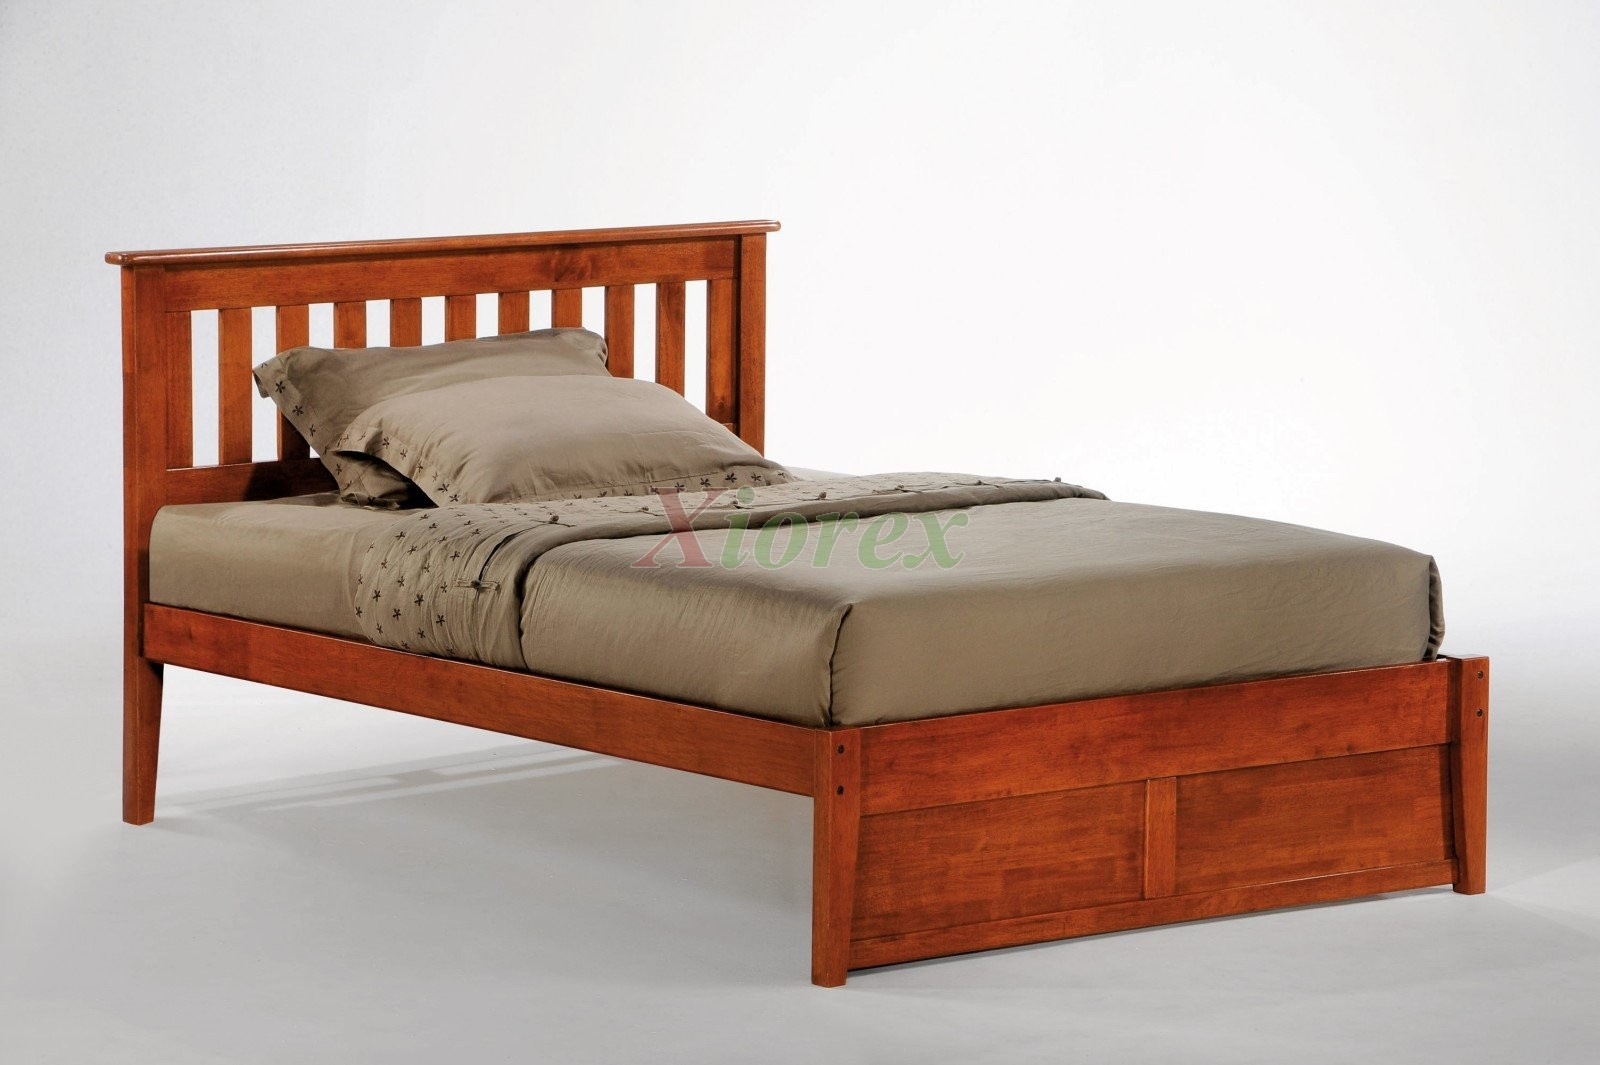 rosemary bed full size cherry slat headboard bed xiorex wood beds - Wood Full Size Bed Frame